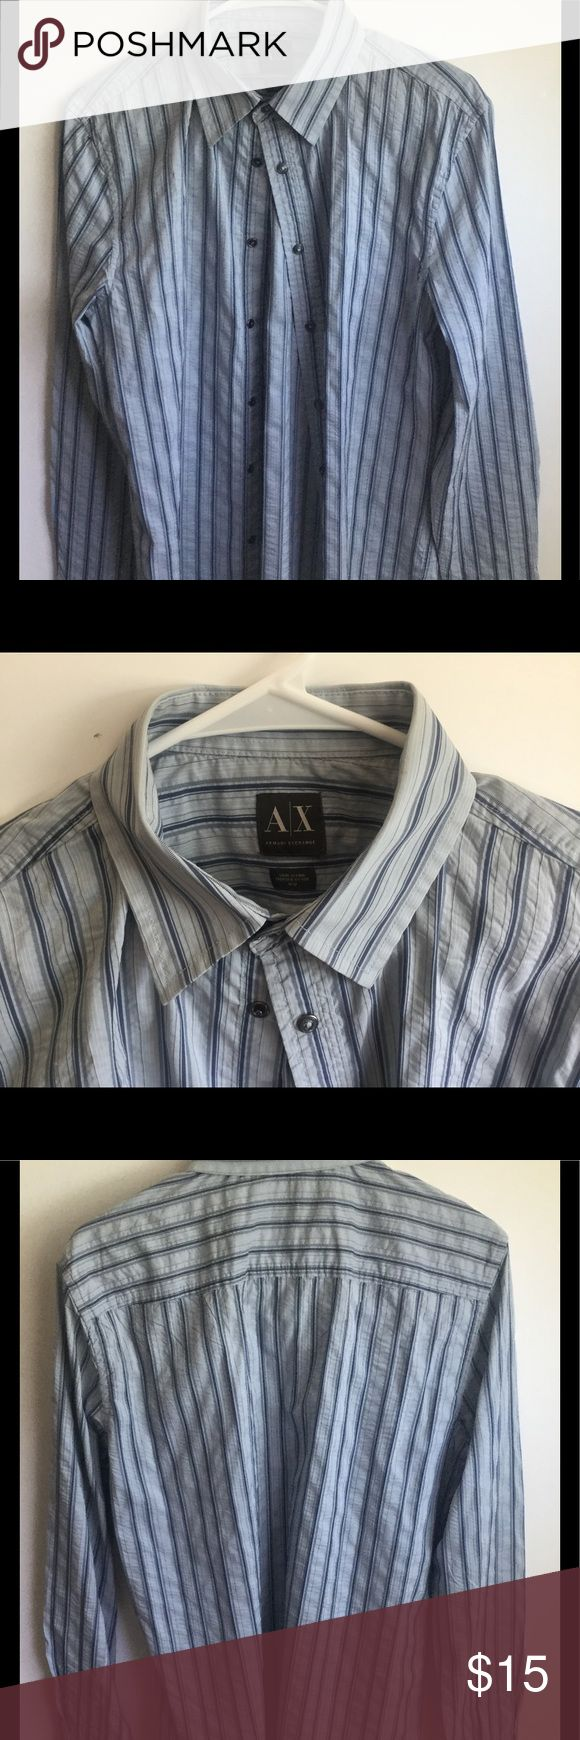 AIX Armani Exchange Men's Shirt Long sleeve Armani Exchange men's shirt.  Gently pre-loved. This shirt has the crinkled look with snap buttons. Great casual shirt with jeans. Armani Exchange Shirts Casual Button Down Shirts